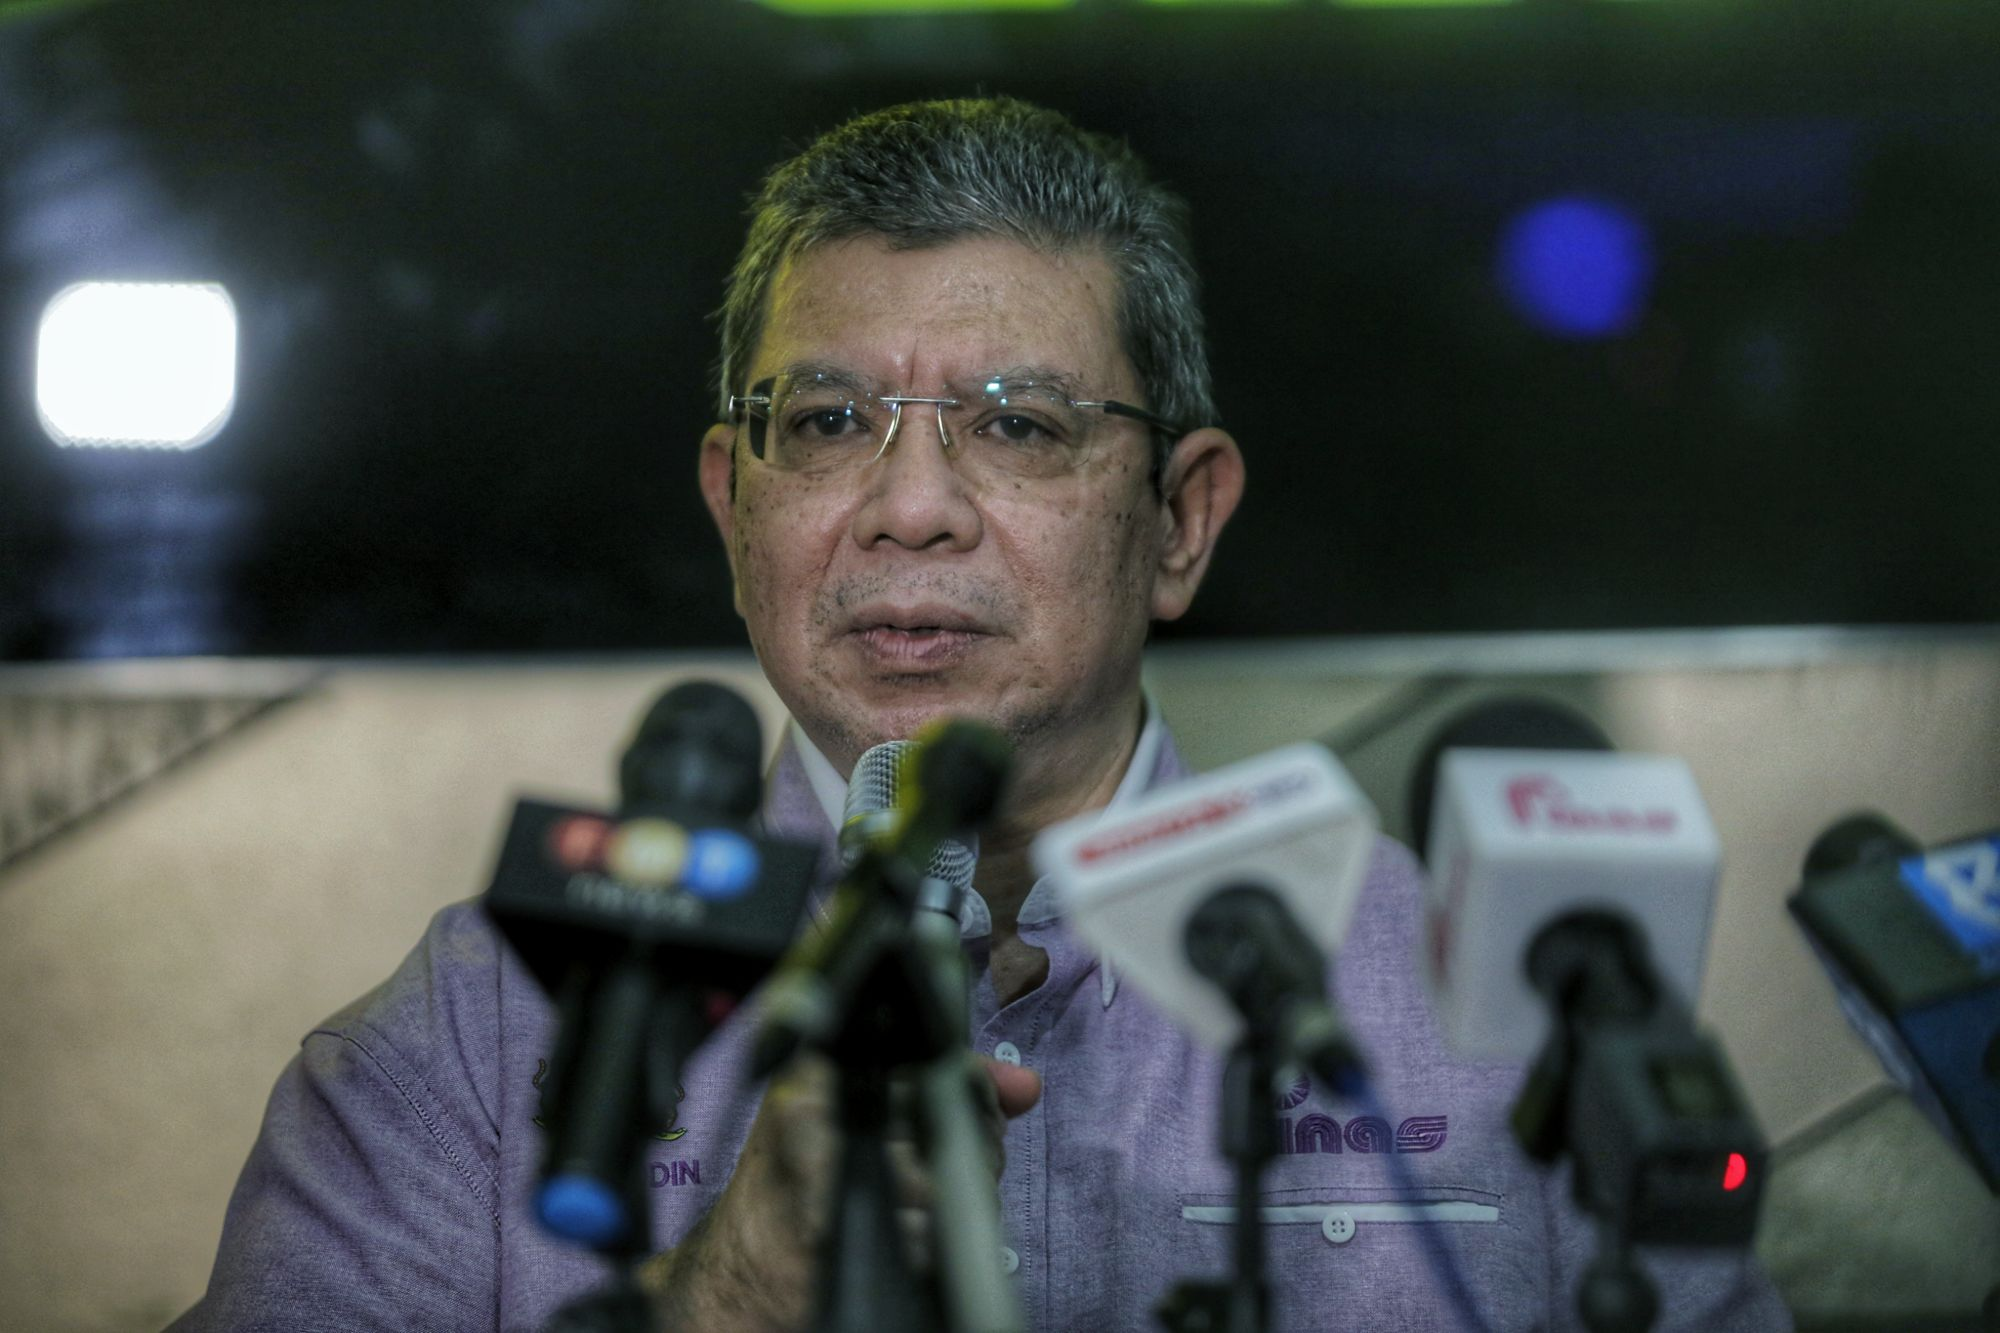 Communications and Multimedia Minister Datuk Saifuddin Abdullah said both the Malaysian Communications and Multimedia Commission (MCMC) and CyberSecurity Malaysia have yet to receive any report on the matter. — Picture by Ahmad Zamzahuri